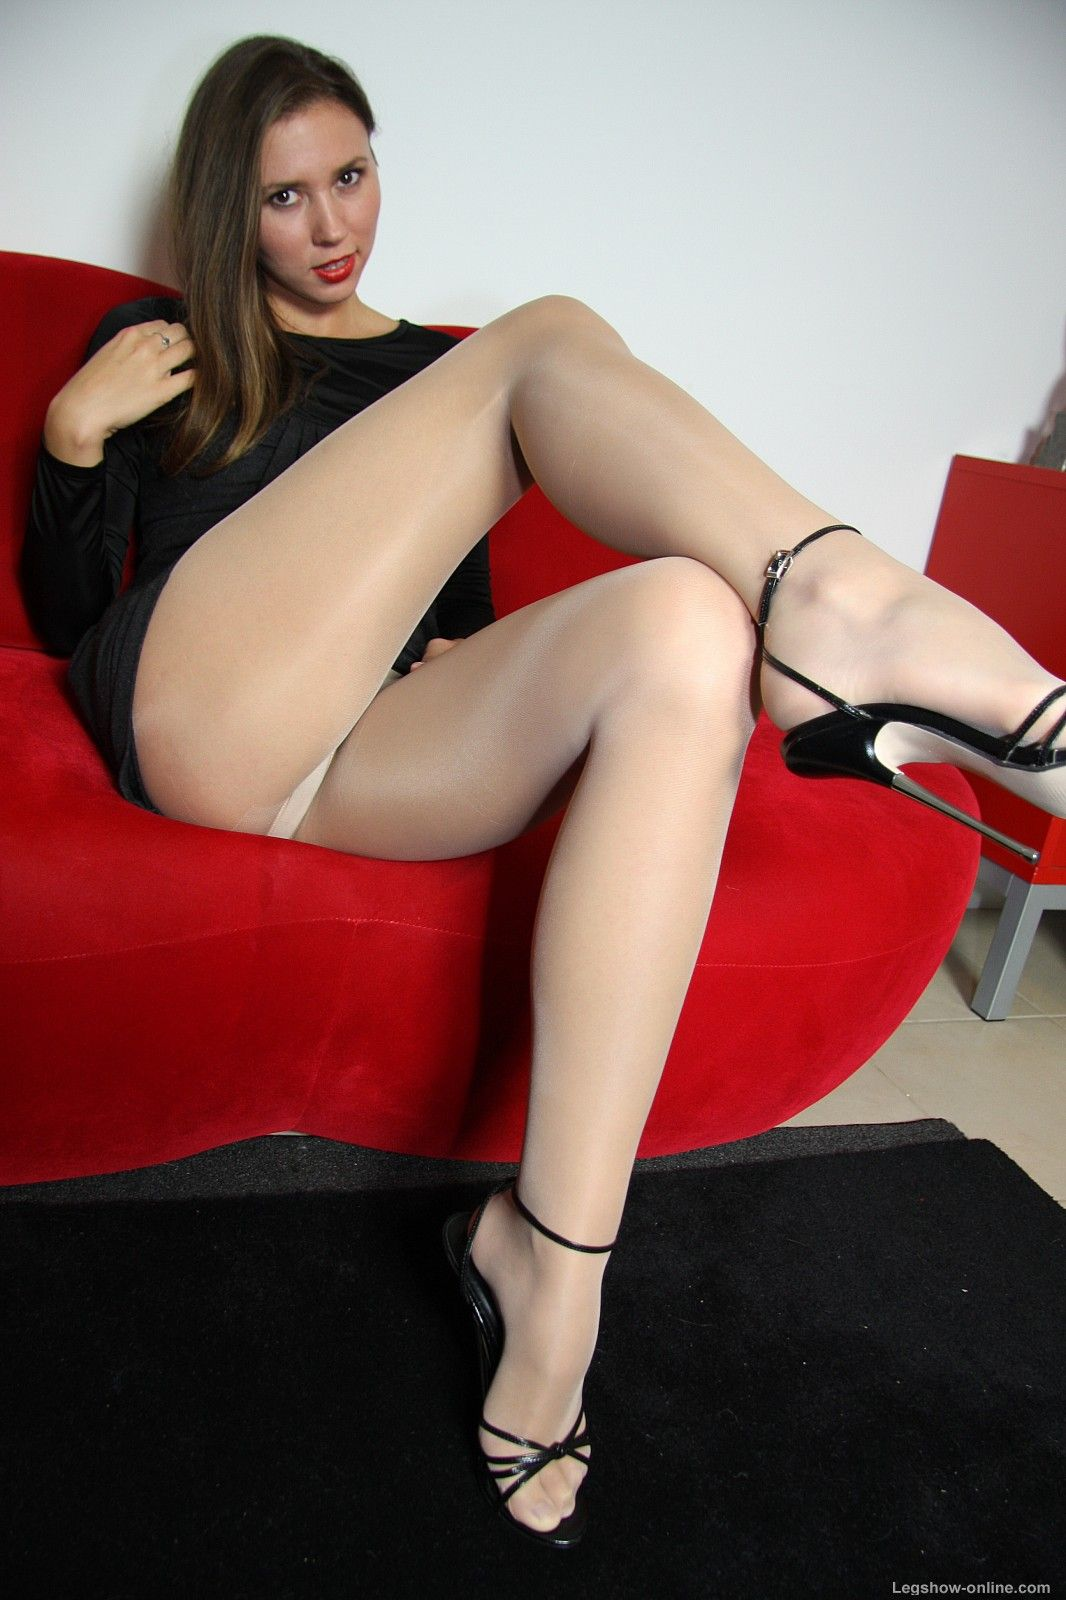 unique pantyhose fetish porn website